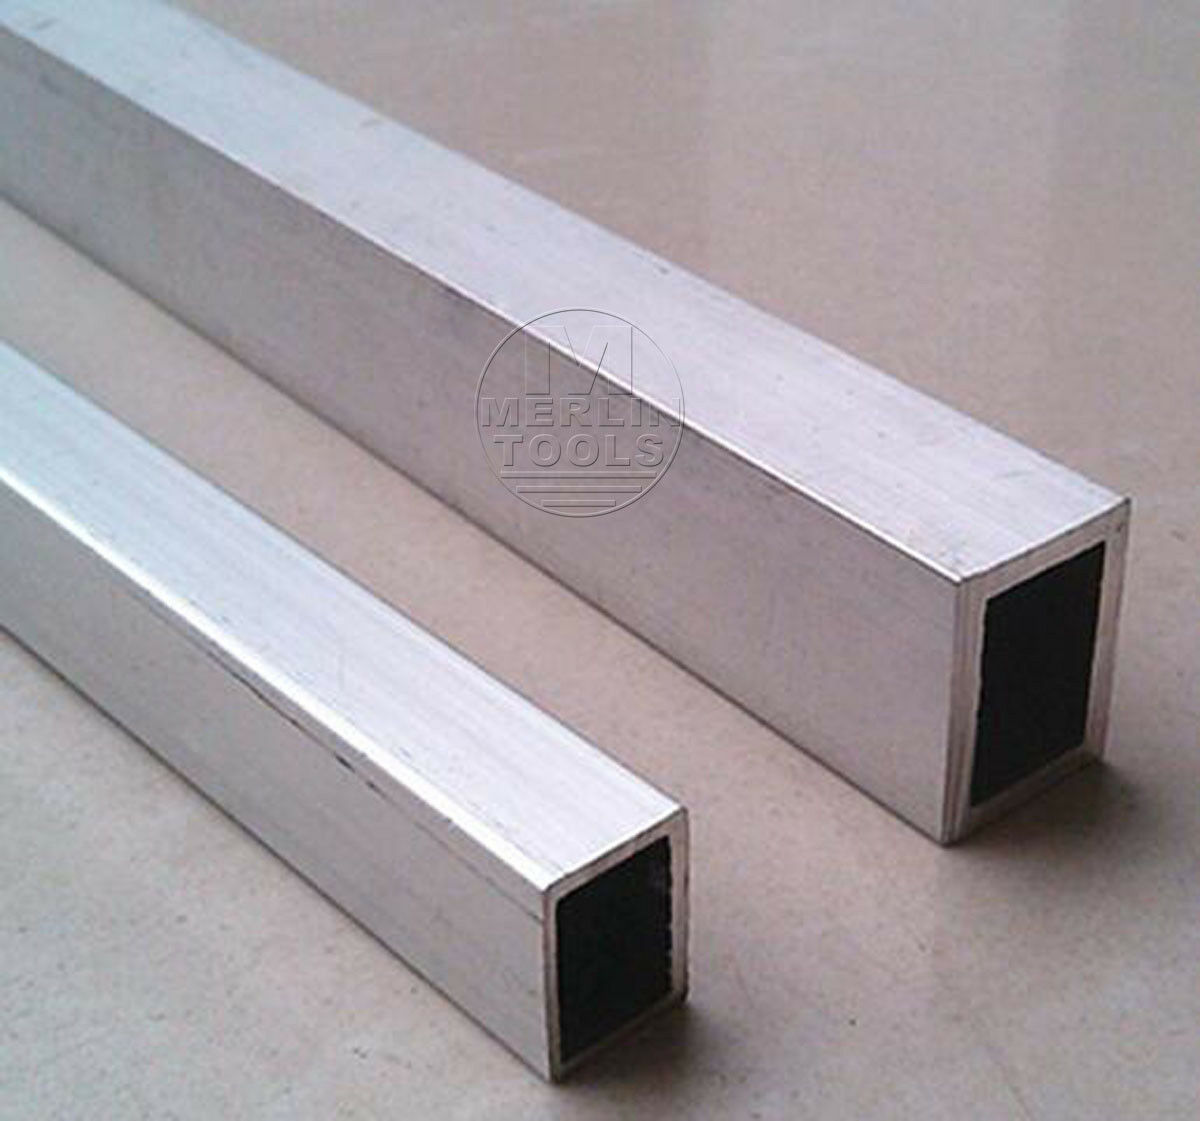 Select 40x80 44x76 50x50 50x70 100mm 6061 Aluminum Square Tube L  100mm - 600mm